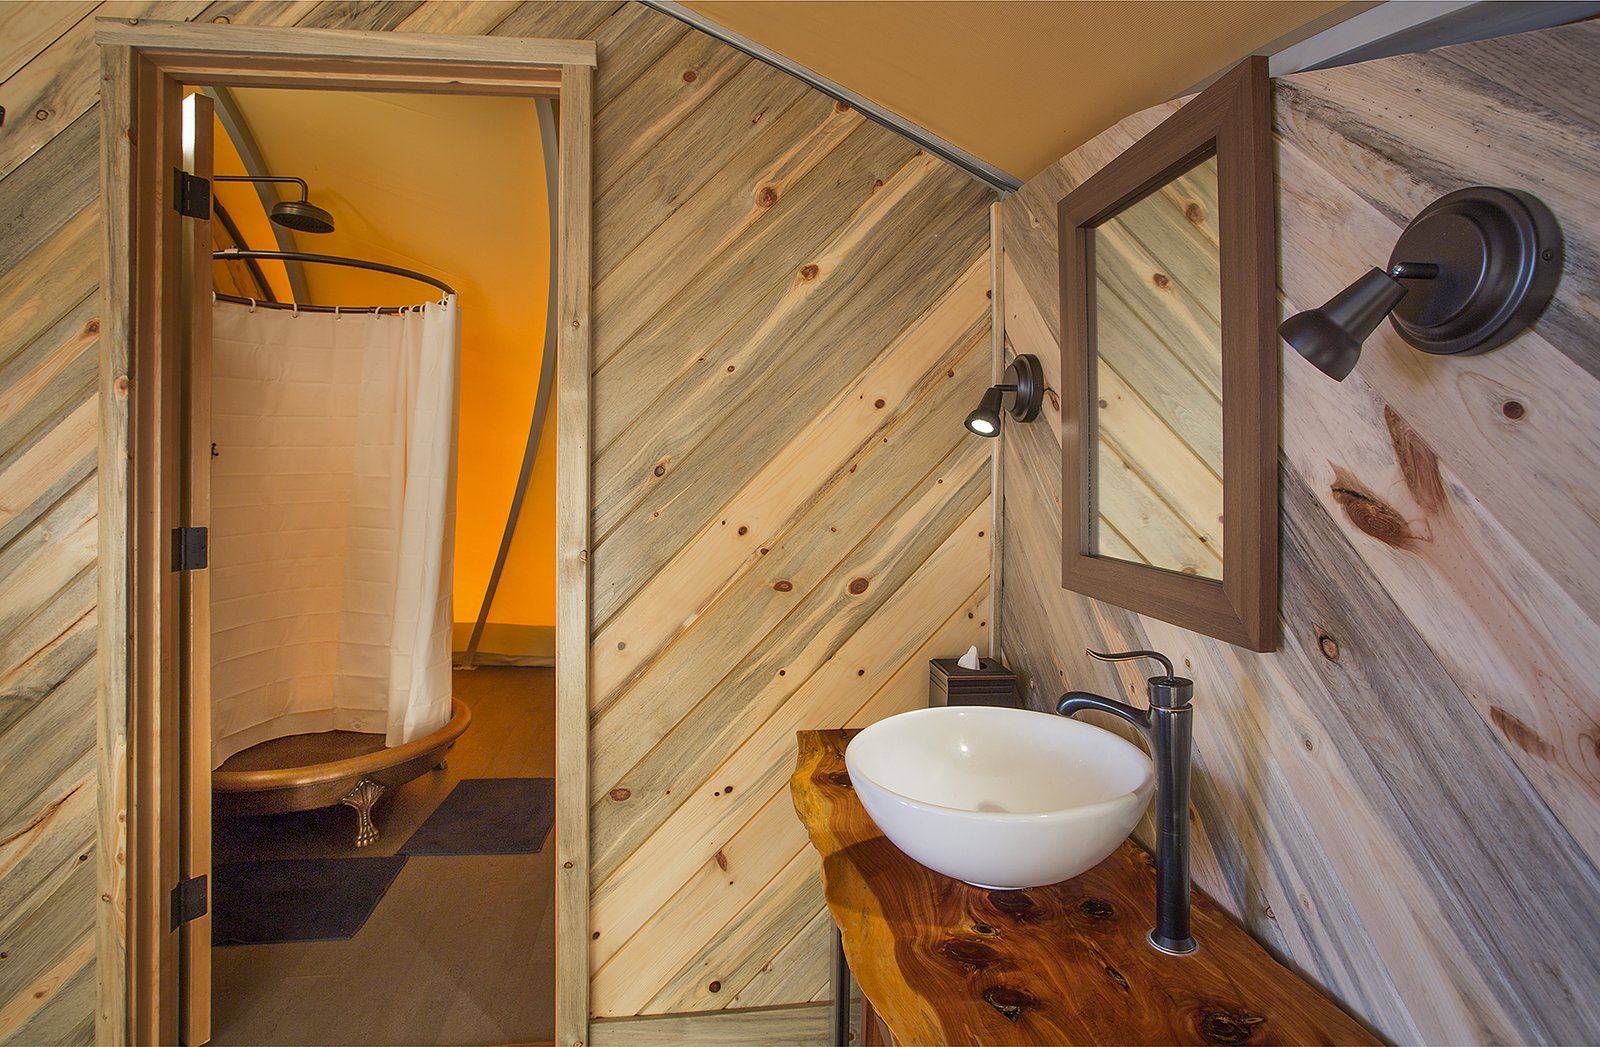 Bath, Vessel, Medium Hardwood, Wood, Wall, and Enclosed The Autonomous Tent runs on Treebones Resort's water supply. Solar panels power the LED lights, pumps, water filters, and a composting system.  Bath Enclosed Medium Hardwood Wood Photos from Sleep in a Translucent Cocoon for $495 a Night